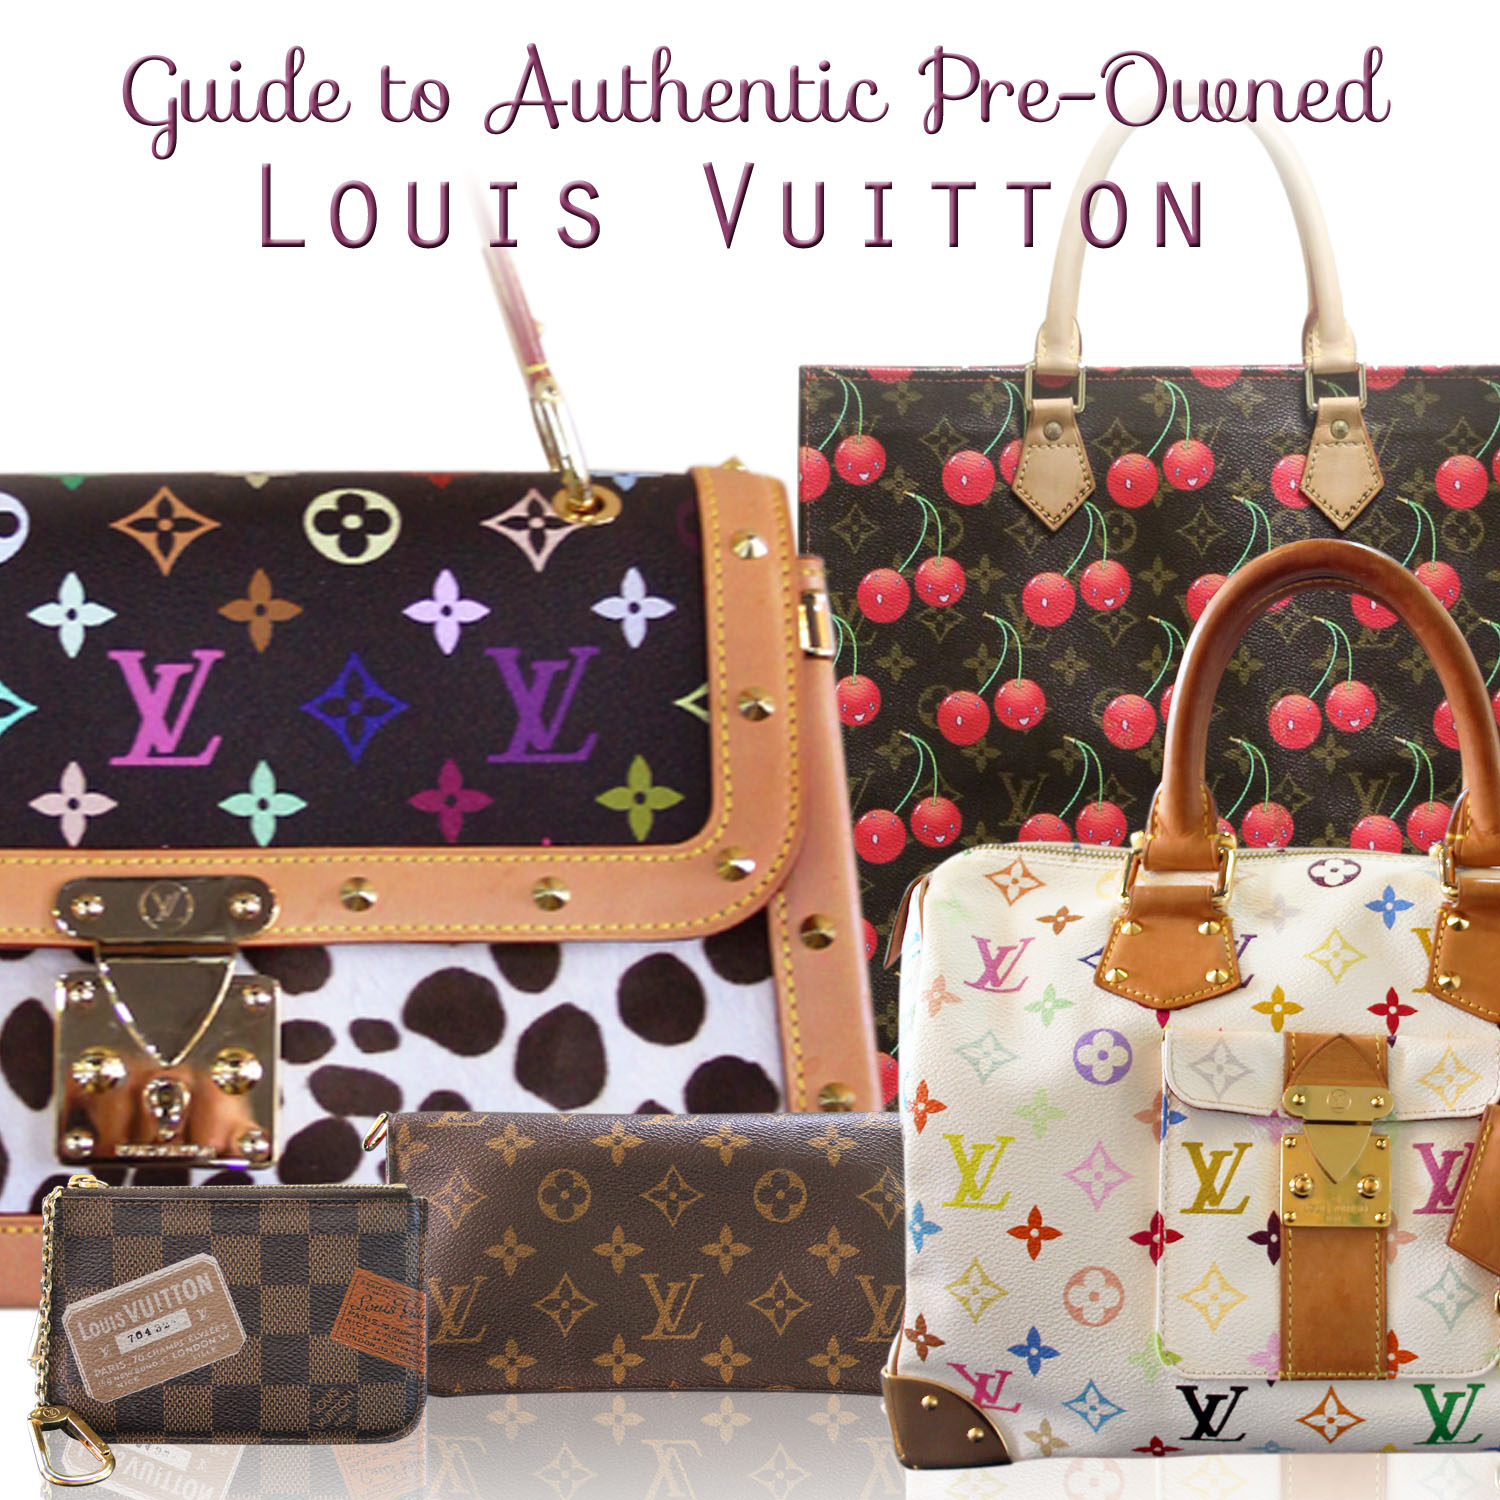 18991ad102f6 Your Guide To Authentic Pre-Owned Louis Vuitton